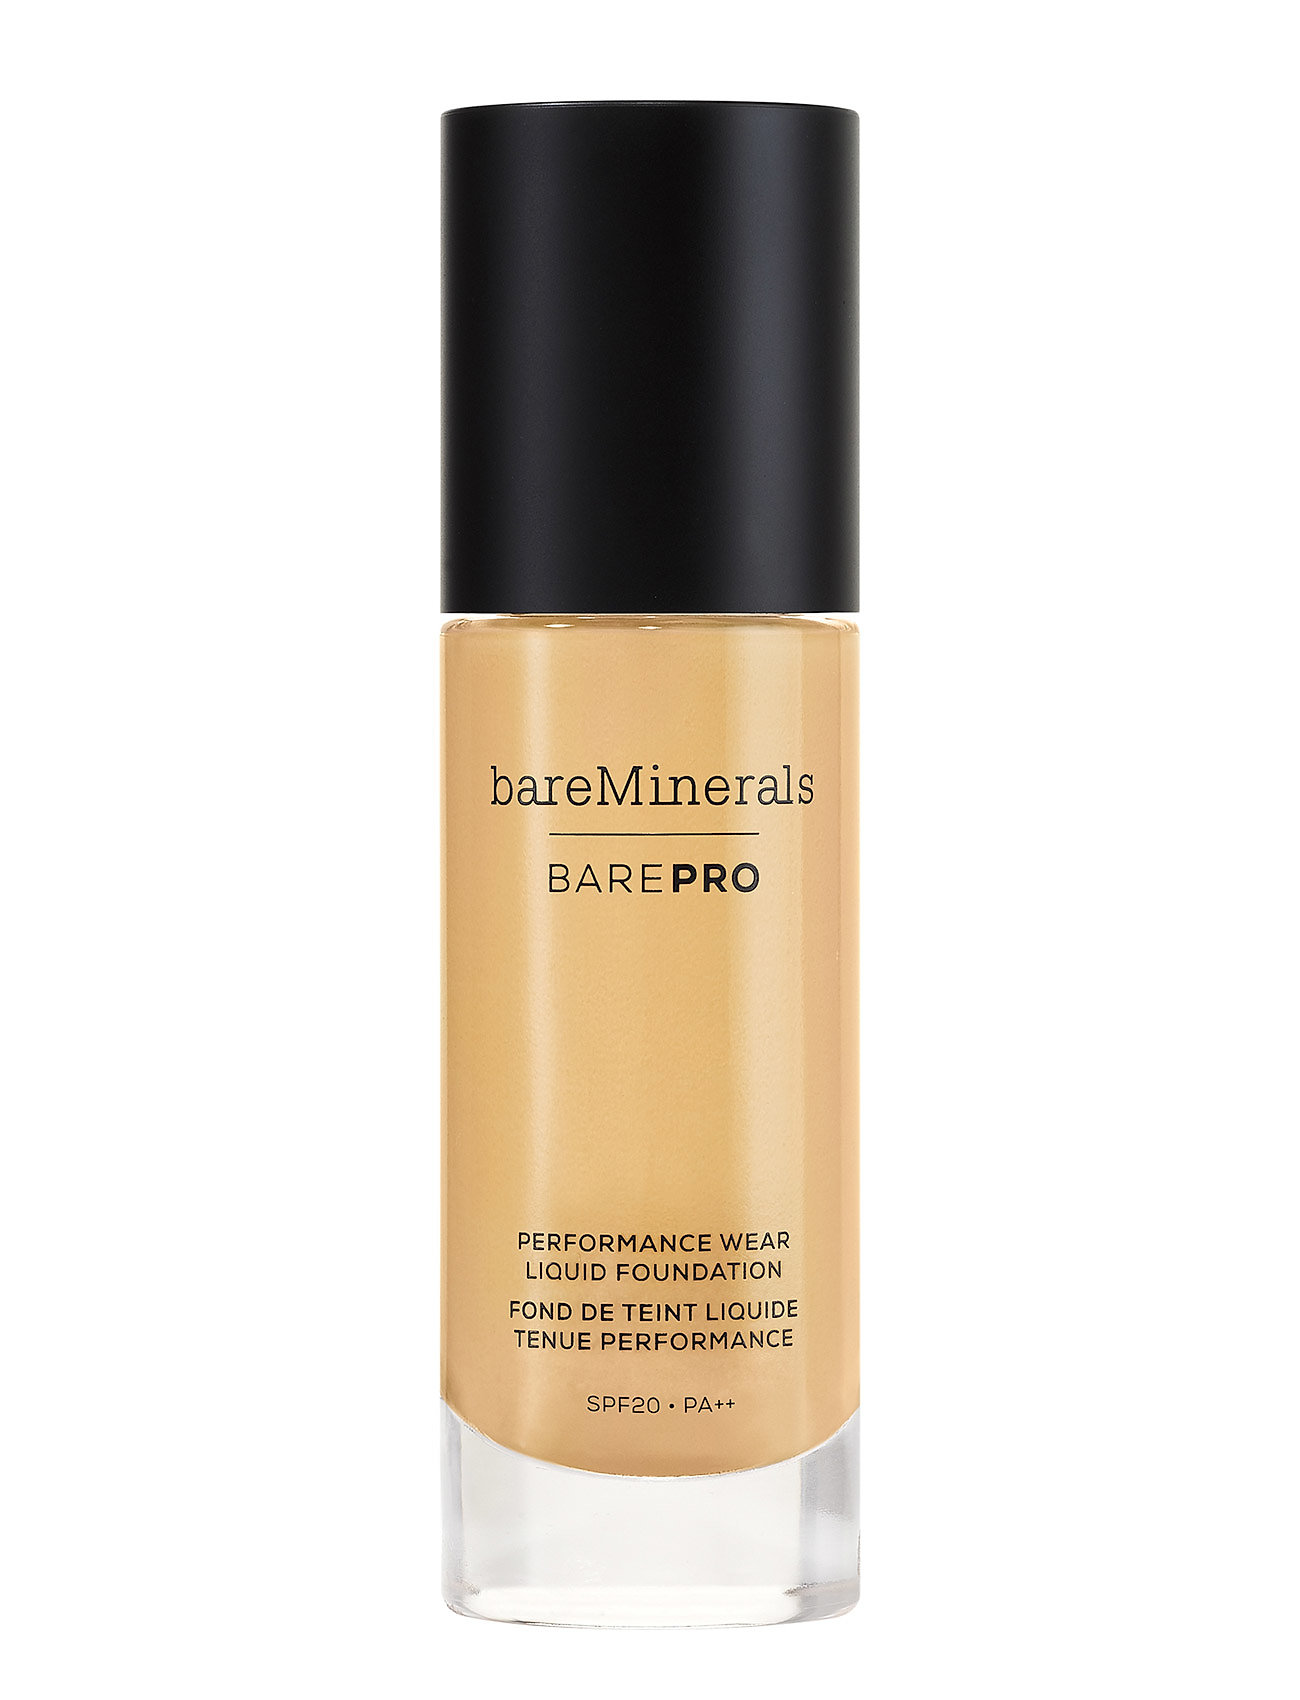 Image of Barepro Performance Wear Liquid Foundation Spf 20 Foundation Makeup BareMinerals (3067521581)